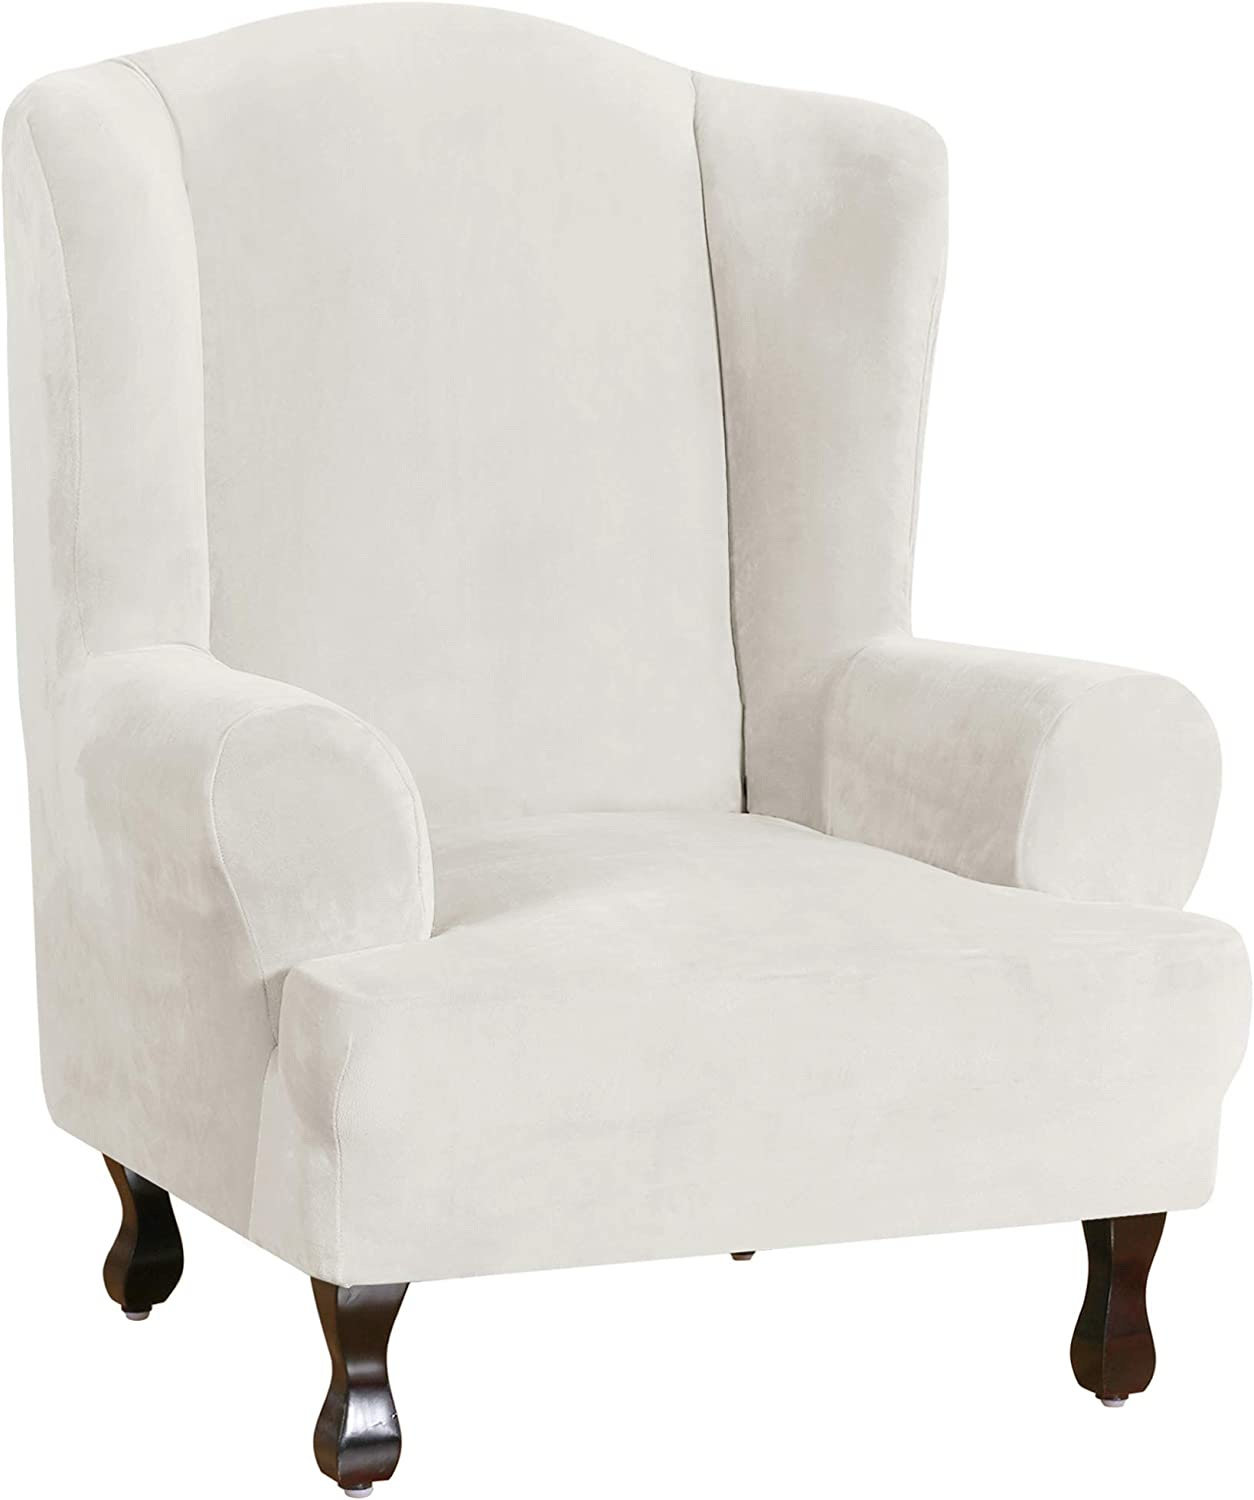 Wing Chair Slipcover Velvet Slipcovers for Wingback Chairs Ultra Soft Plush Sofa Covers 1-Piece Furniture Cover/Wingback Chair Cover with Elastic Bottom, Machine Washable (Wing Chair,Off White)